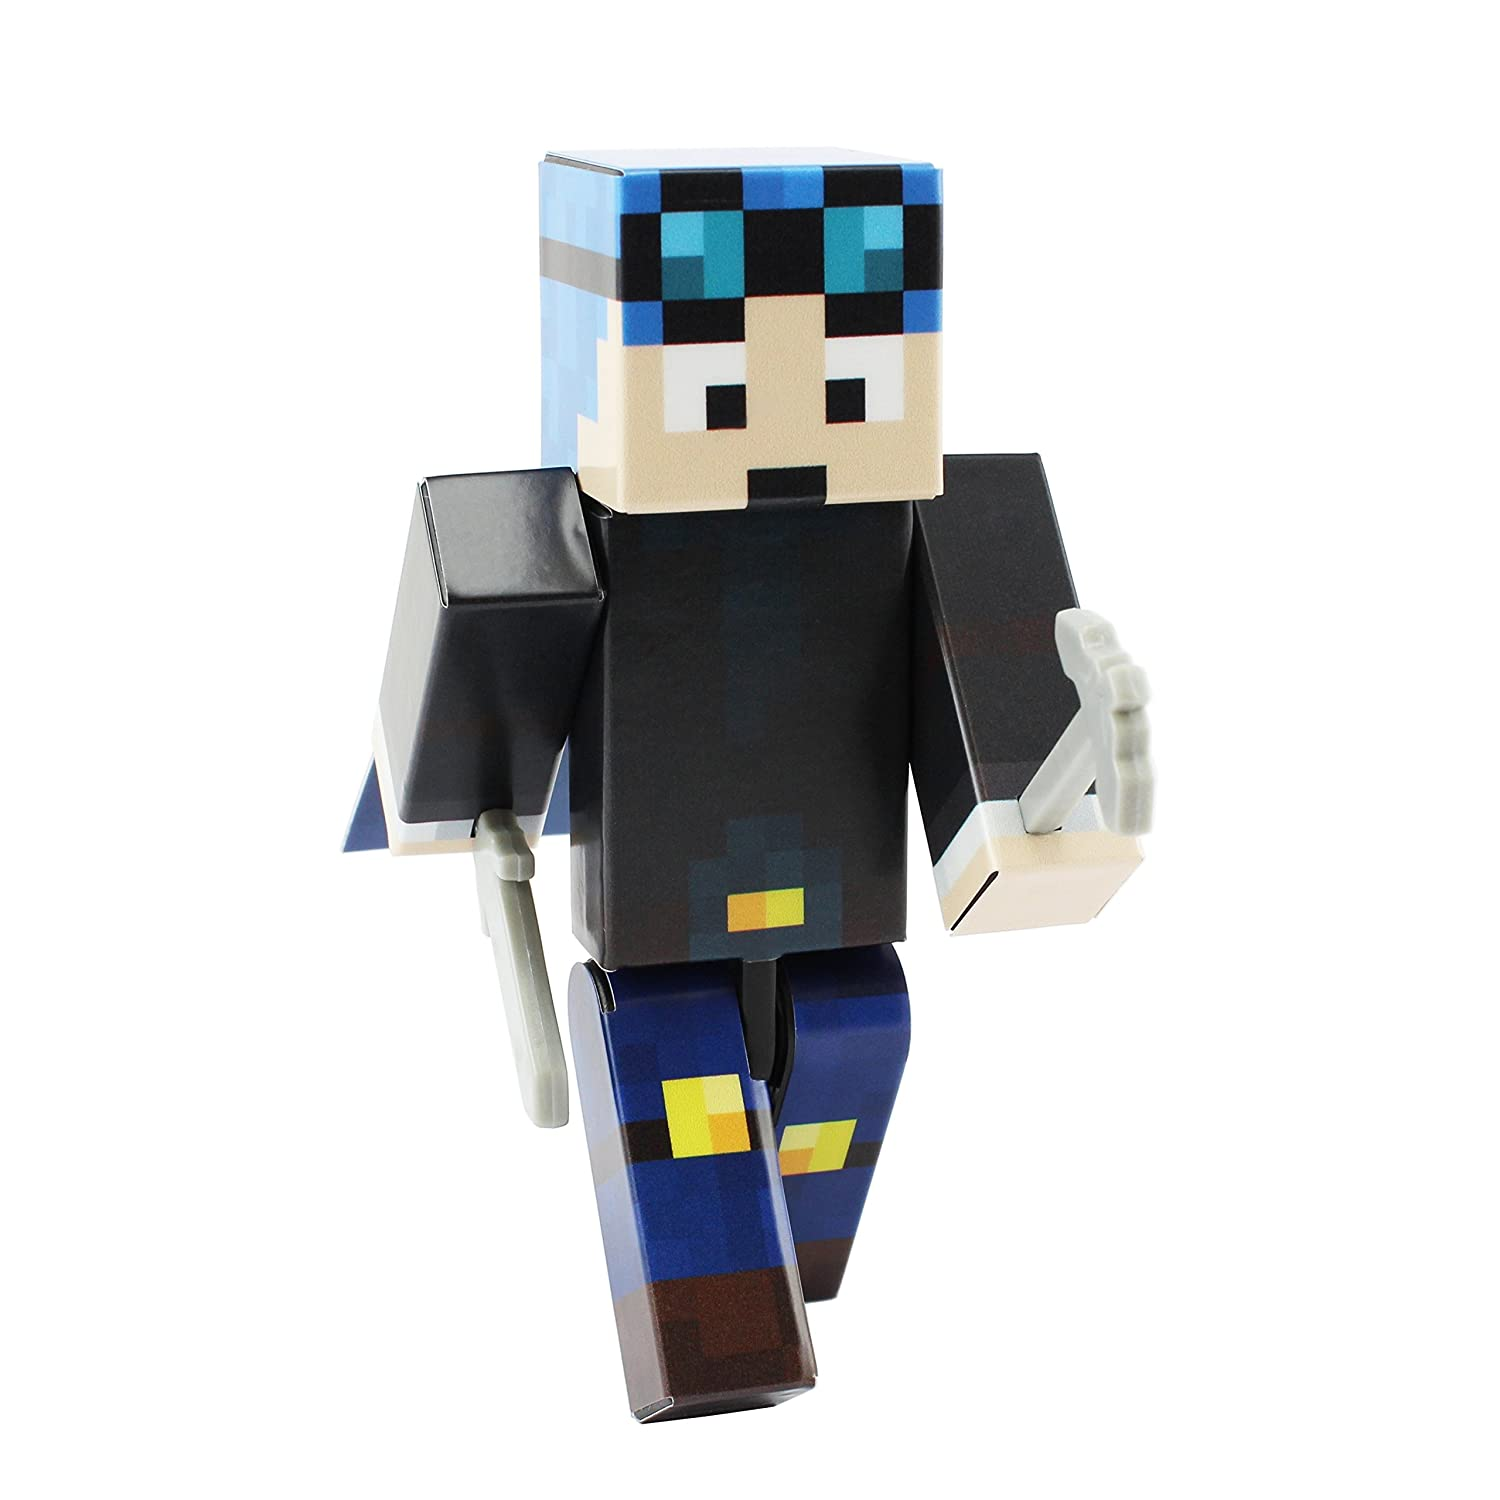 Blue Hair Miner Boy Action Figure Toy, 4 Inch Custom Series Figurines by EnderToys [Not an official Minecraft product] Seus Corp Ltd.